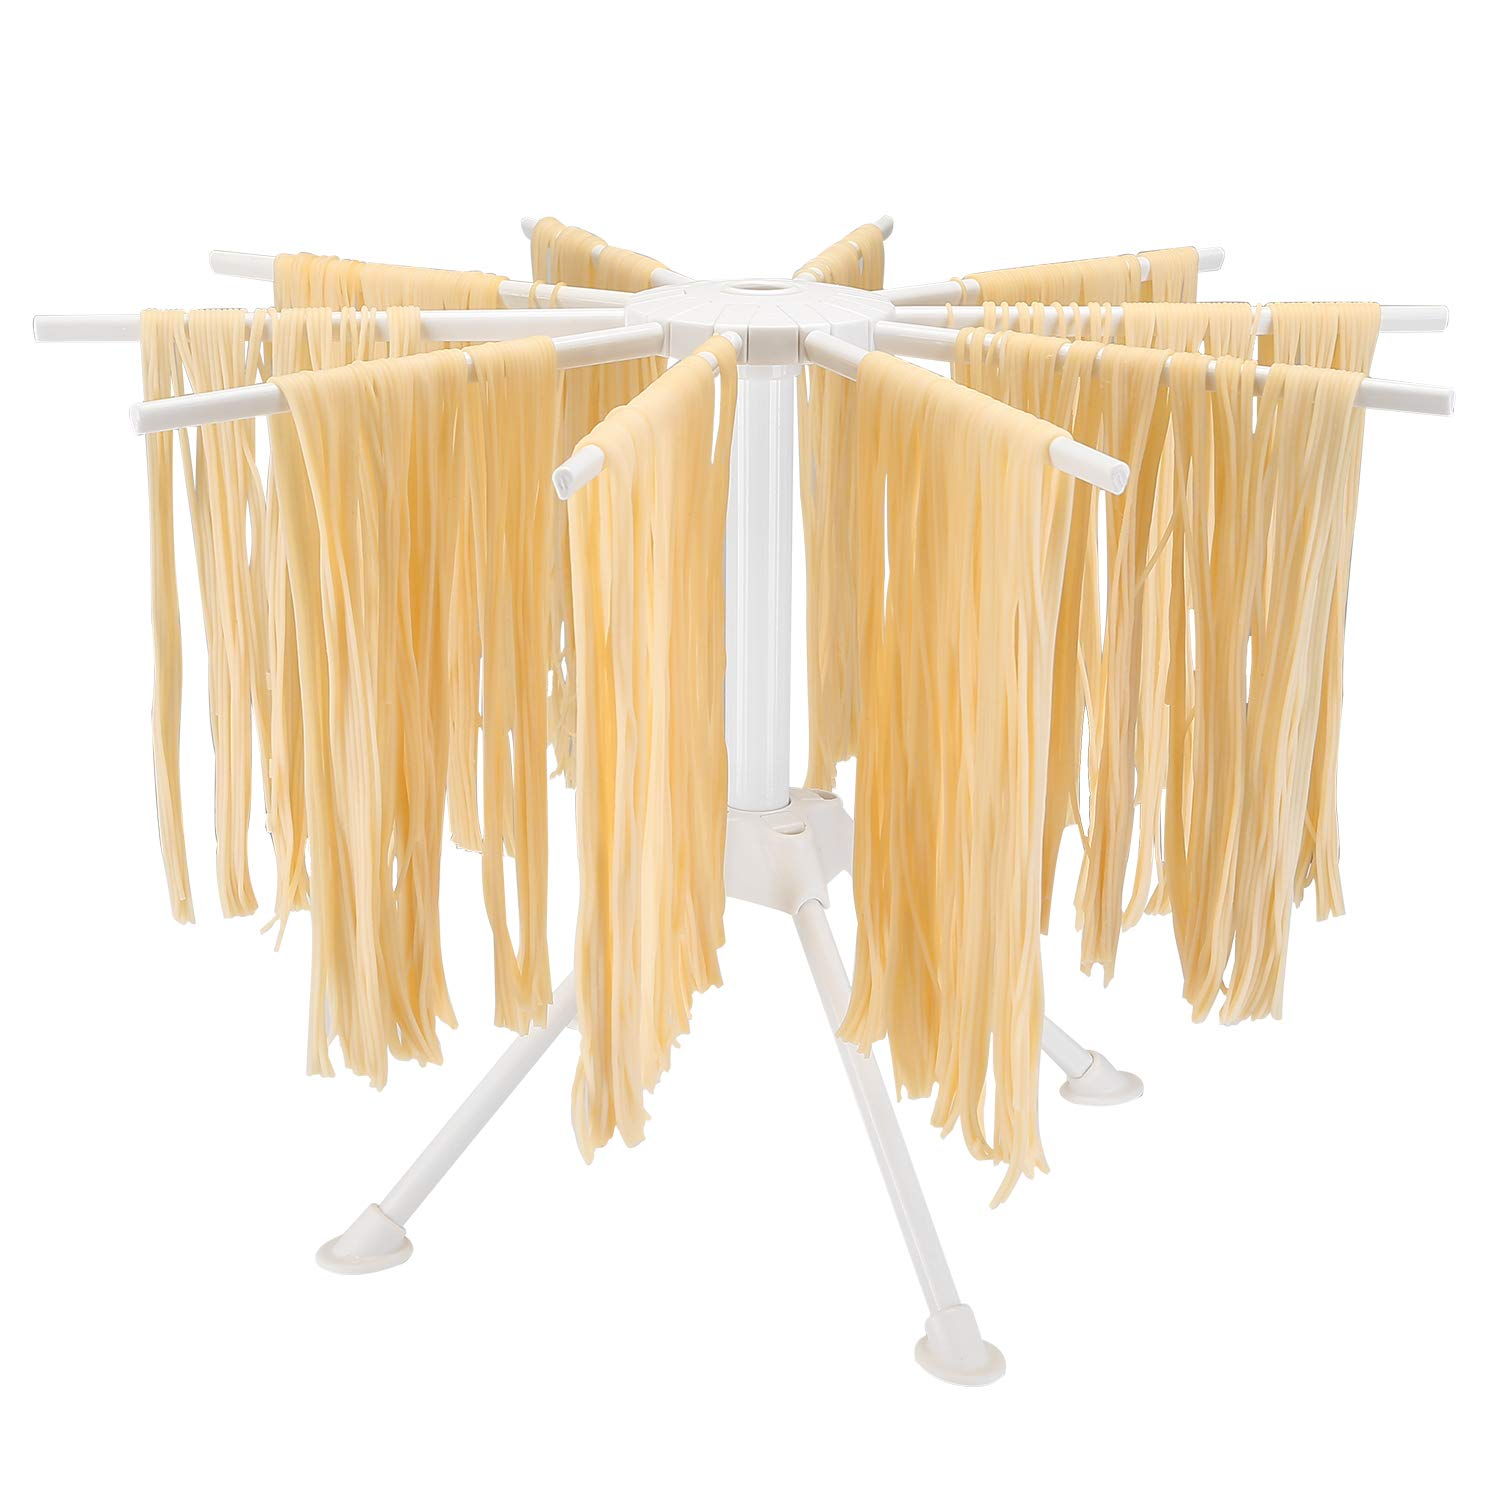 Hin Plus Pasta Drying Collapsible